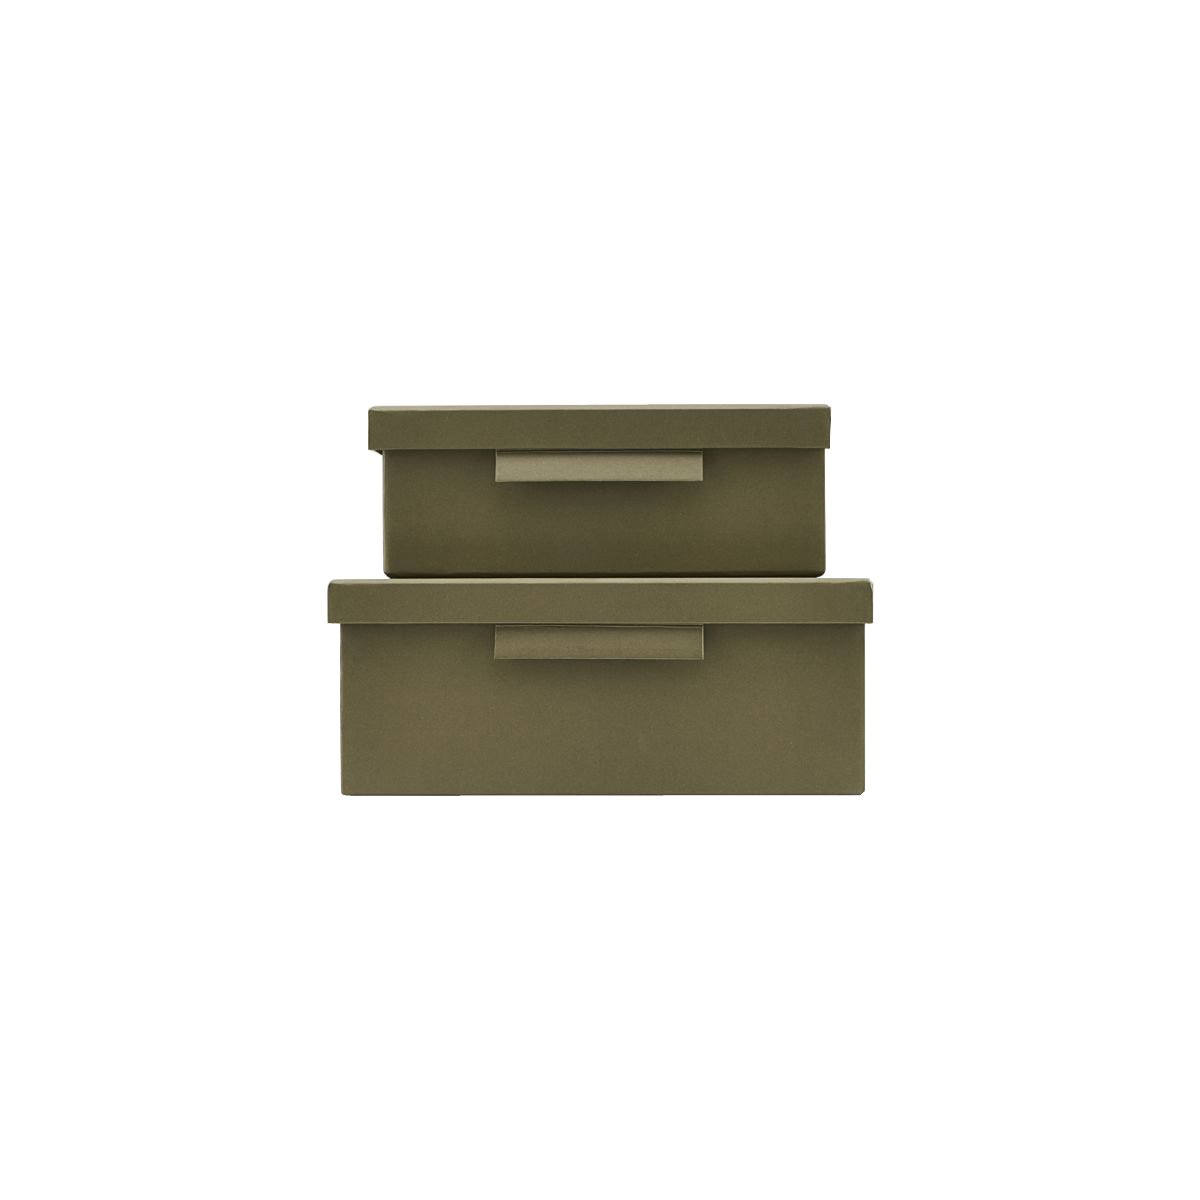 House Dcotor - File Box With Lid - Army Grey  (402740010/402740010)